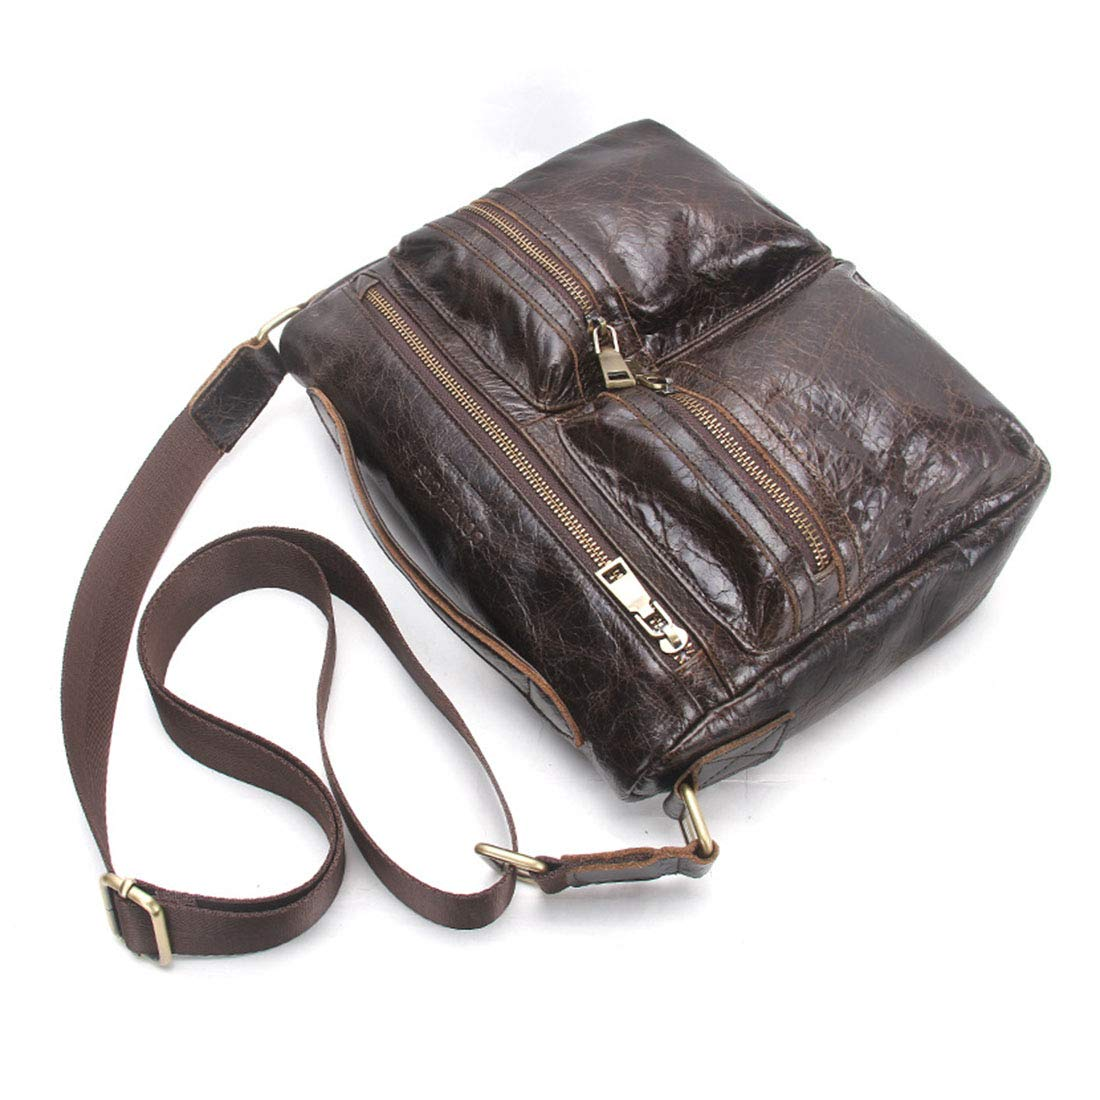 Carriemeow Mens Real Leather Leisure Business Briefcase//Handbag Color : Coffee Color